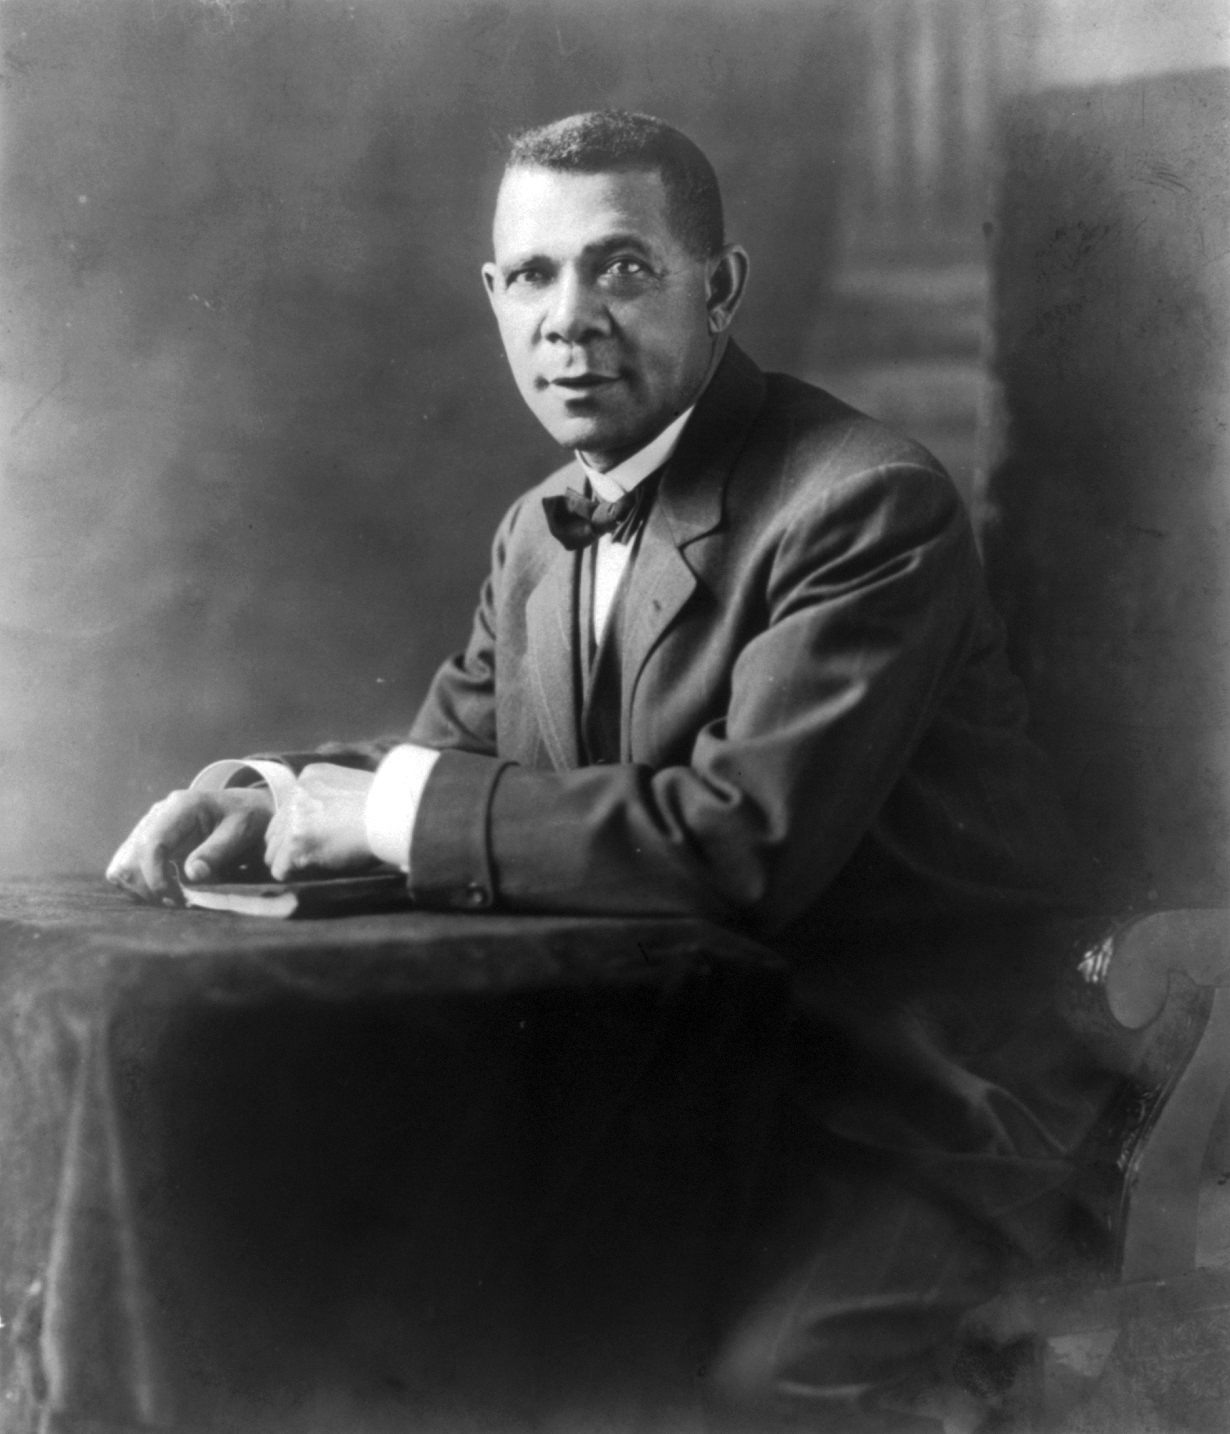 """the life of booker t washington essay Academiaedu is a platform for academics to share research papers skip monument to washington""""s life booker t washington did not understand that his."""